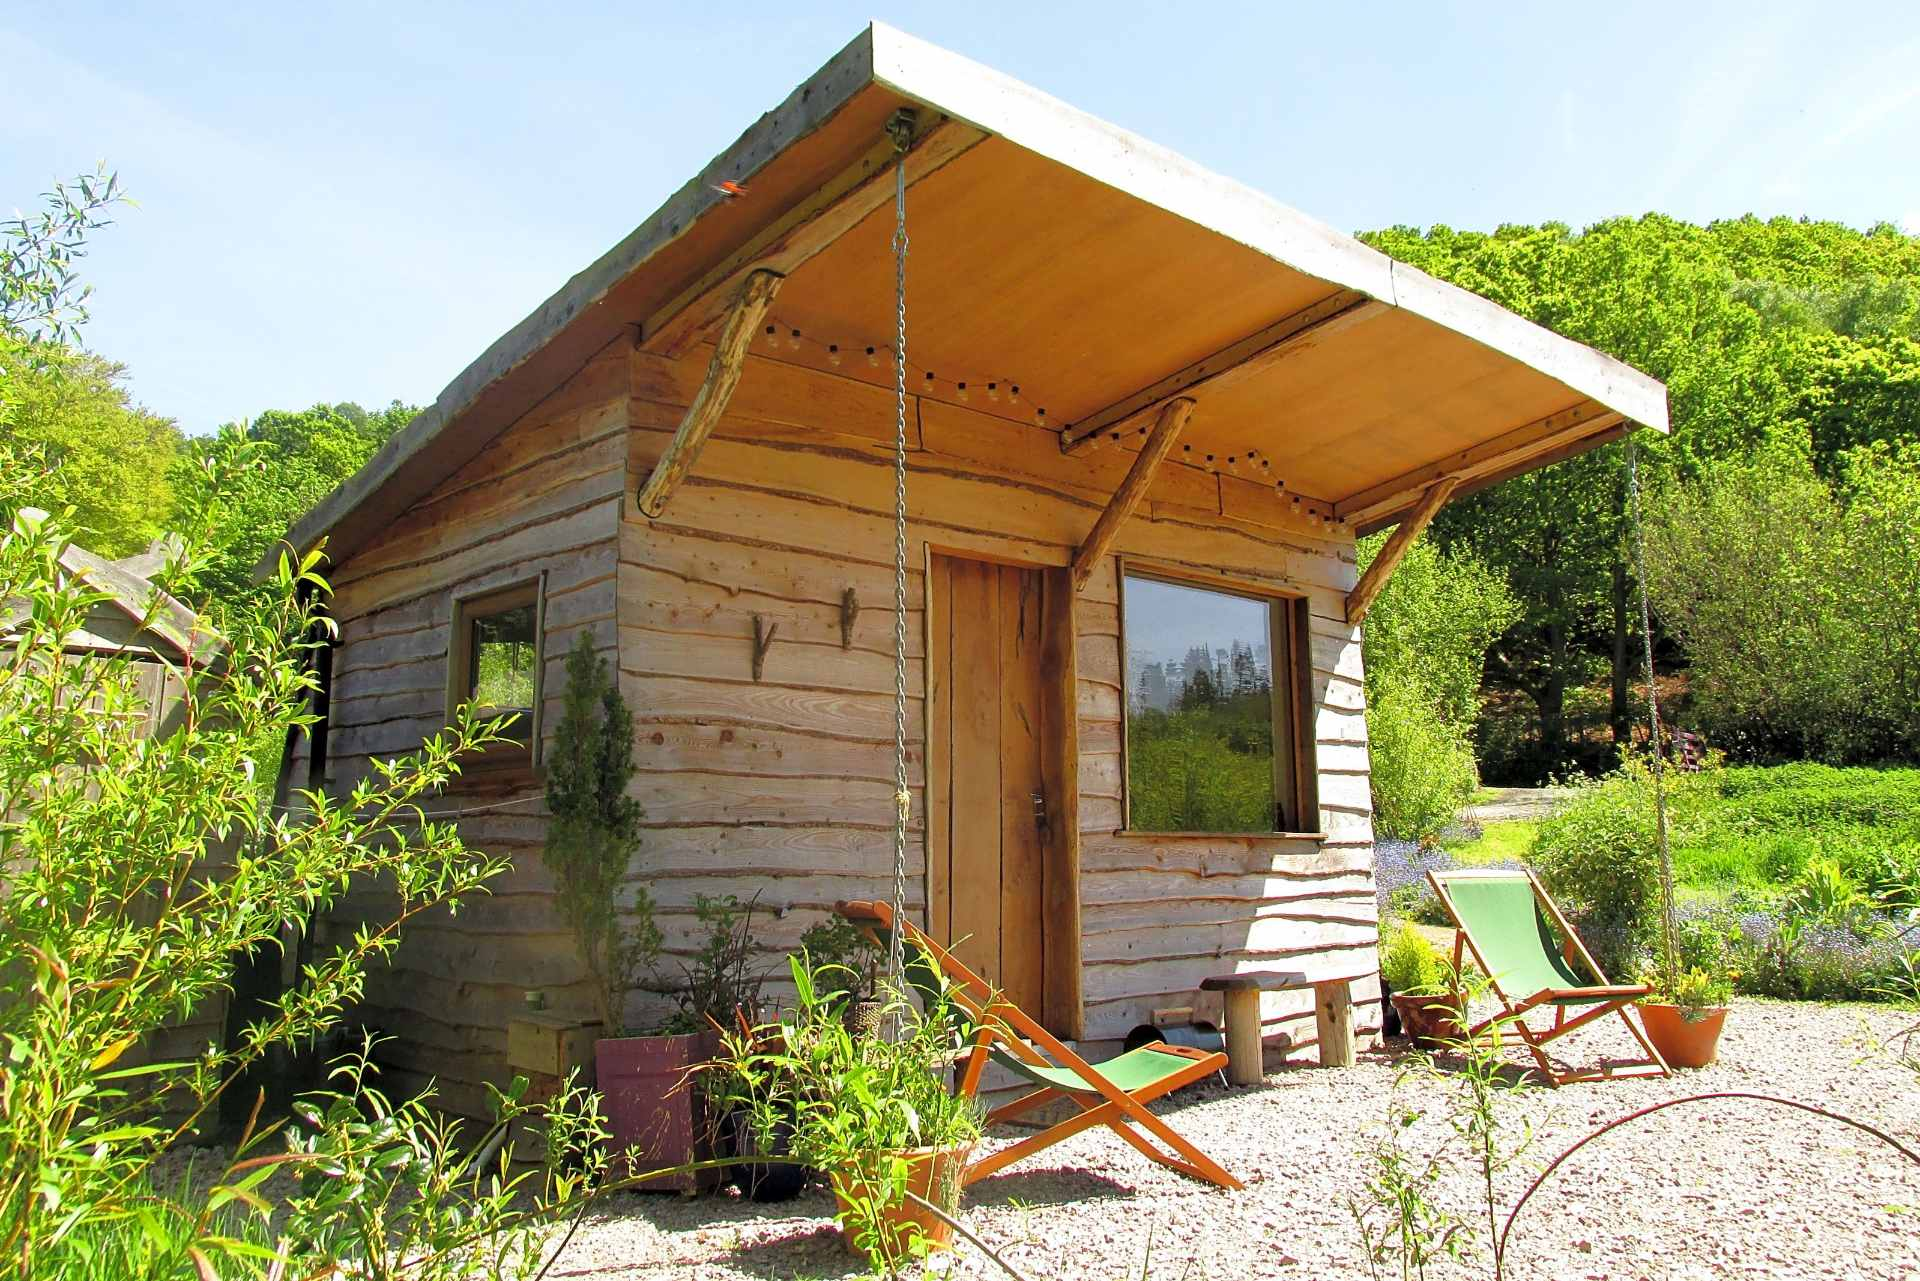 cabin-with-deckchairs-on-stones-outside-in-garden-the-cabins-conwy